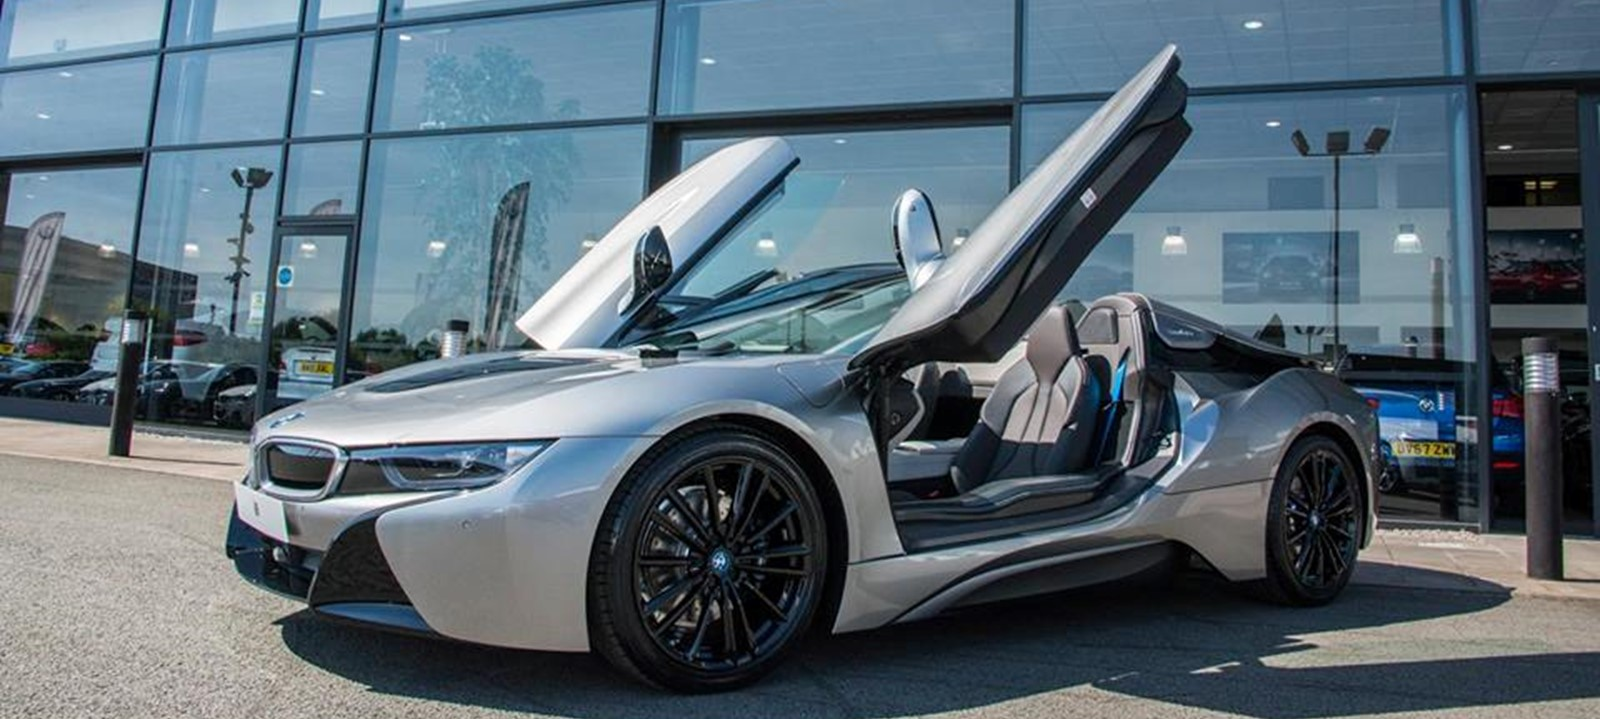 The First Ever Bmw I8 Roadster Is Here